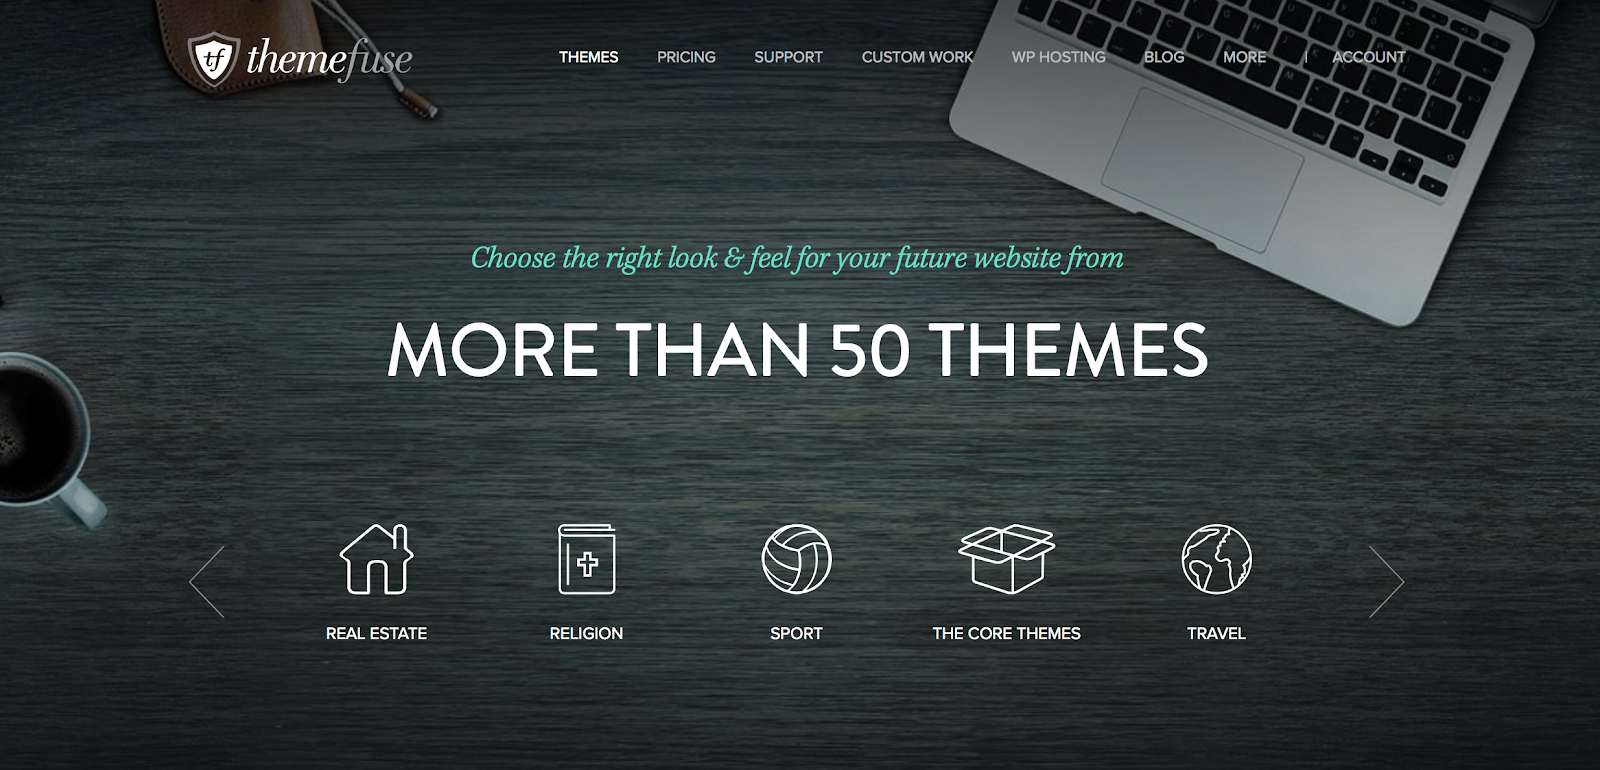 With more than 50 WordPress themes, ThemeFuse will have something for you.